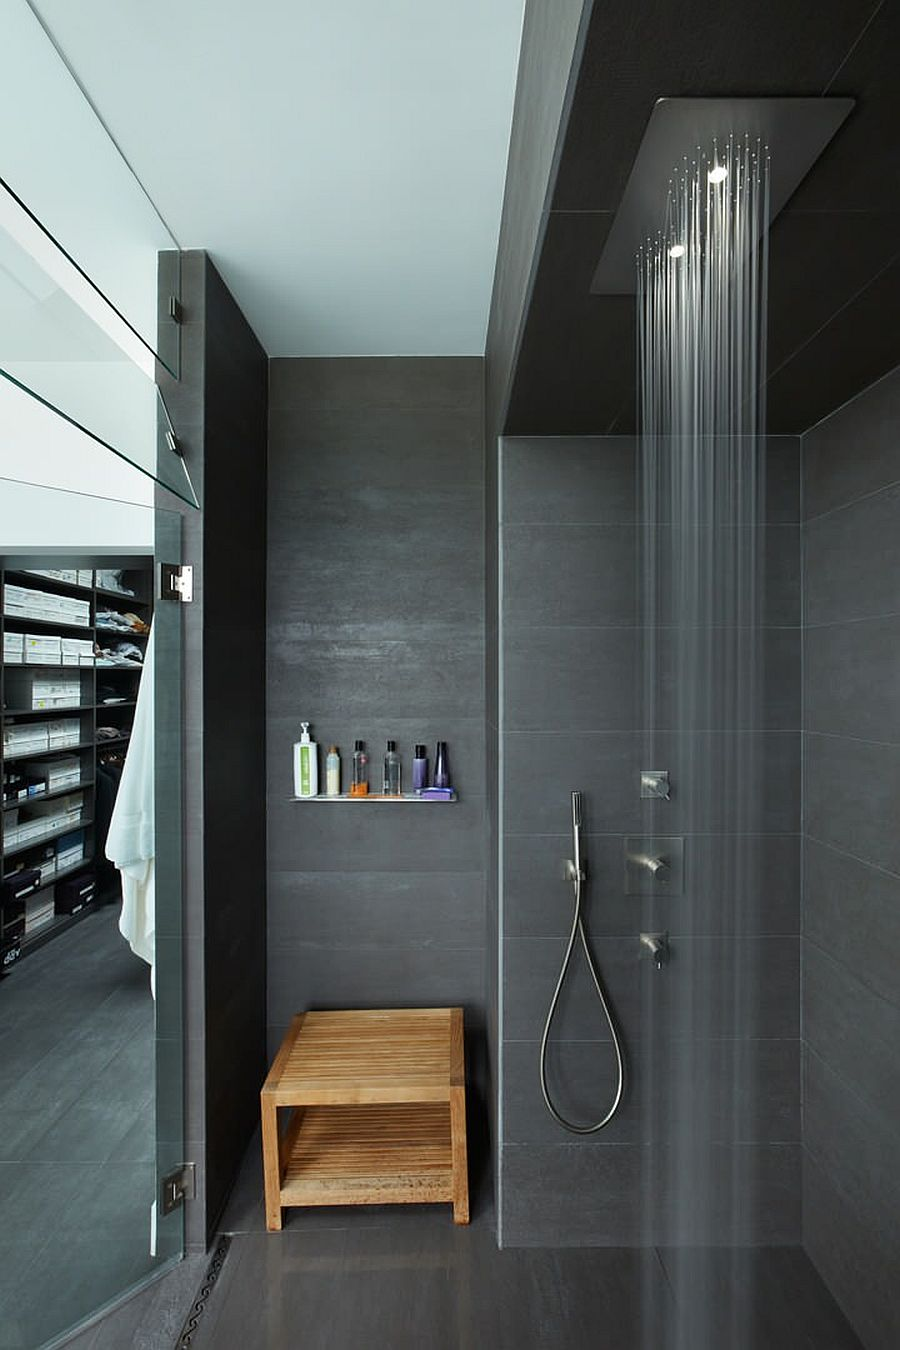 Polished bathroom in charcoal gray with rainfall shower and lovely lighting